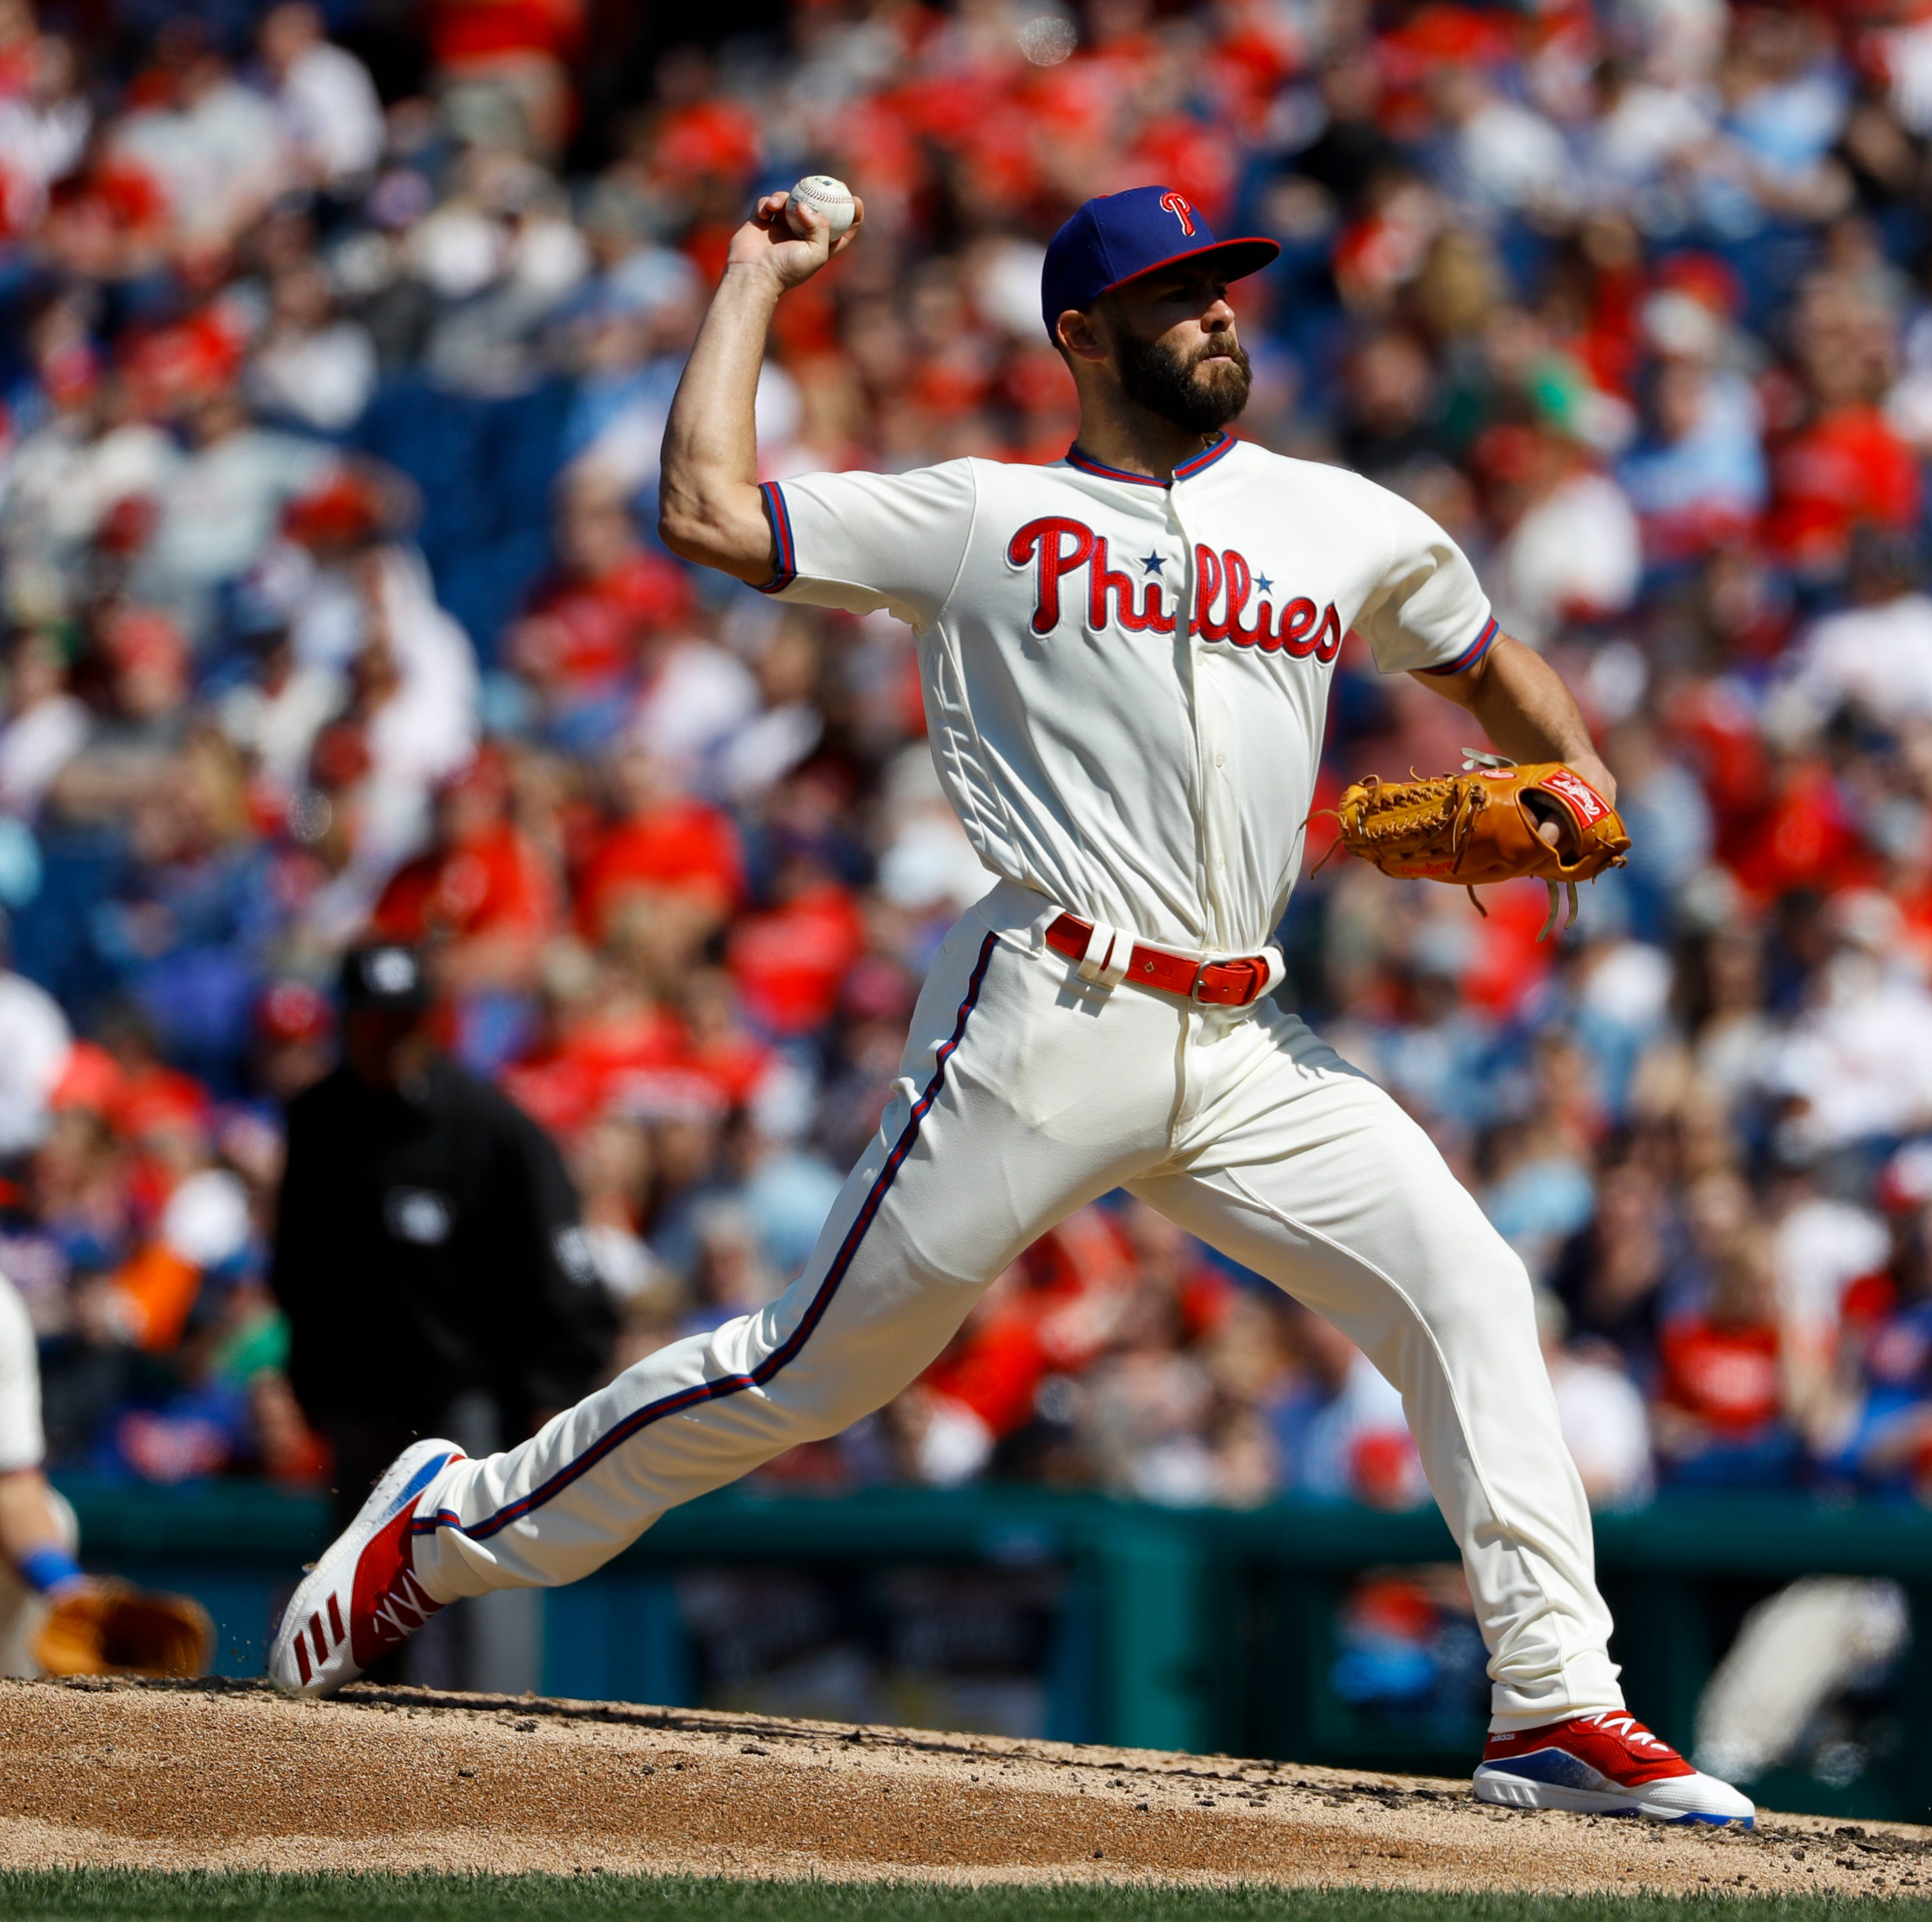 Phillies-Marlins lineup for Friday with Jake Arrieta on the mound